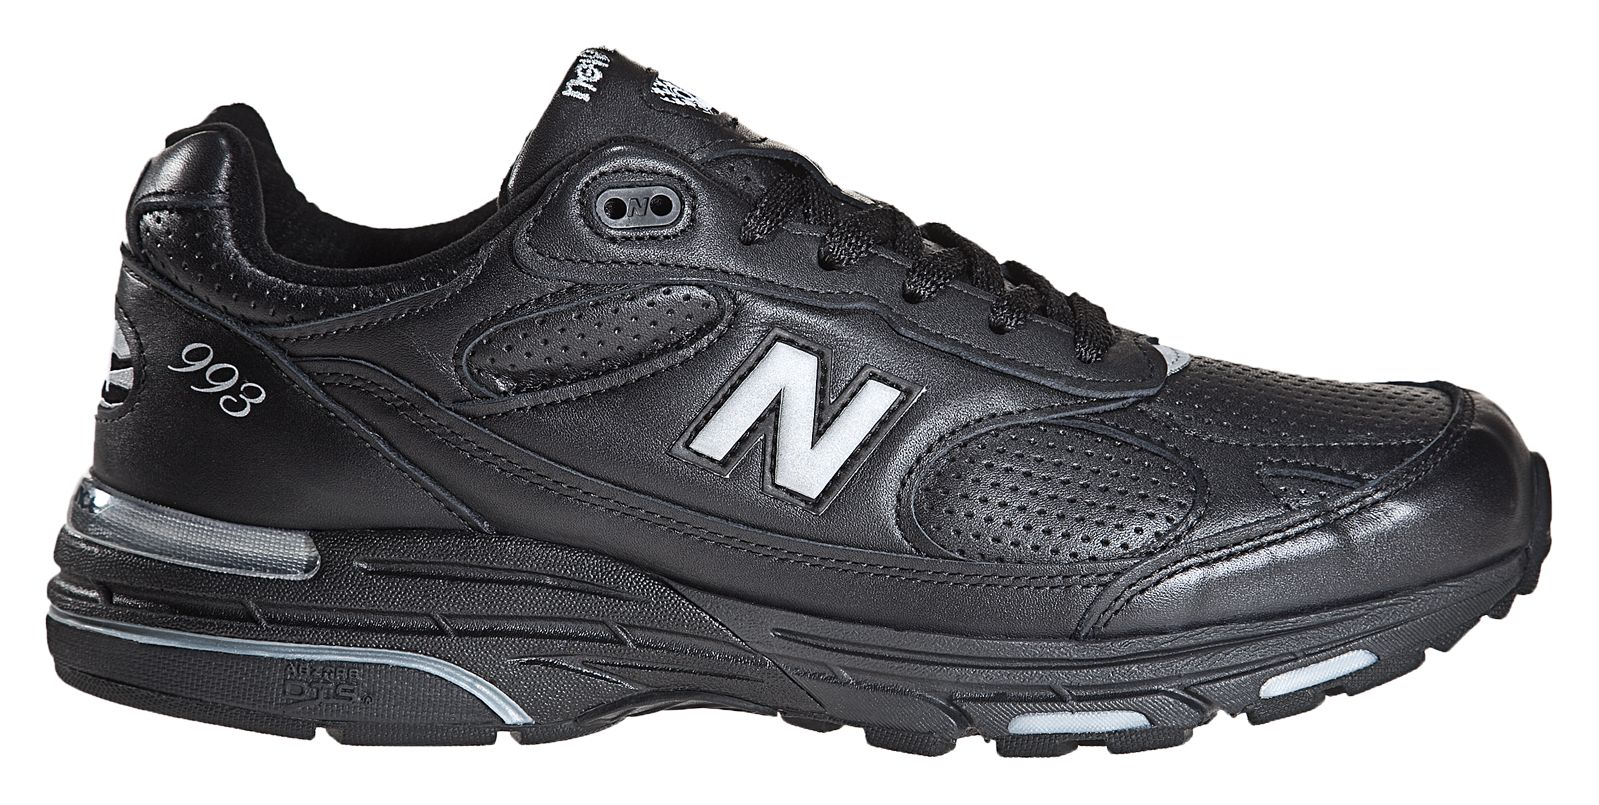 Joe's New Balance Outlet(新百伦折扣店) New Balance Outlet  MR993LBK 系列 仅售$80美元 需用优惠码